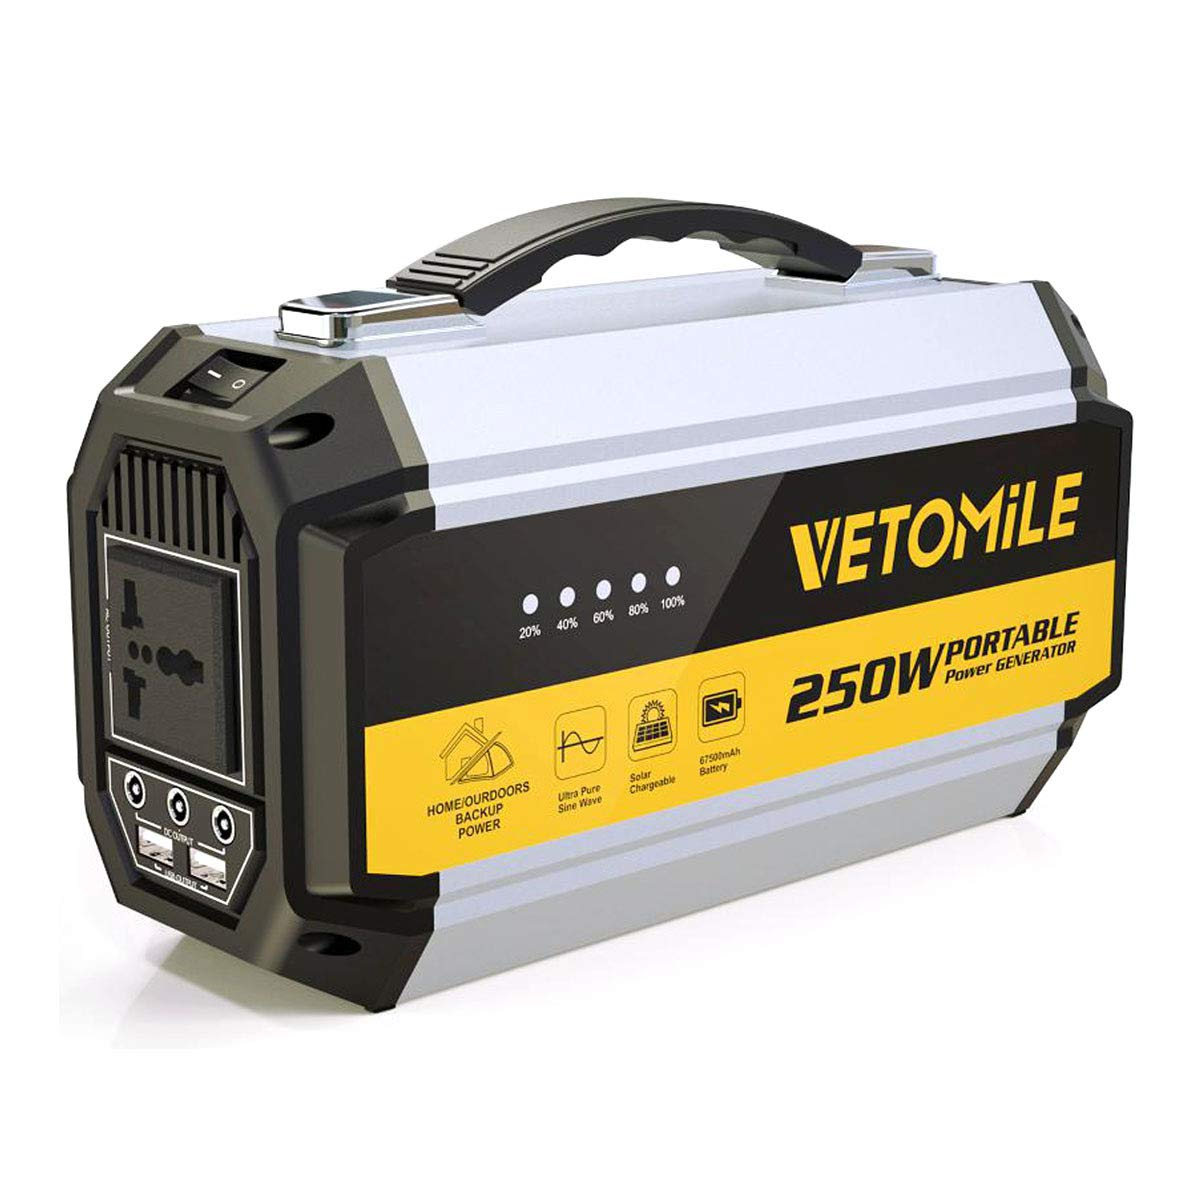 VETOMILE 250Wh Portable Power Station Camping Generator with Pure Sine Wave 110V AC Outlet, 2 USB Ports, 3 DC Ports 67500mAh Lithium Battery Power Supply Pack for CPAP Emergency Outdoor Backup